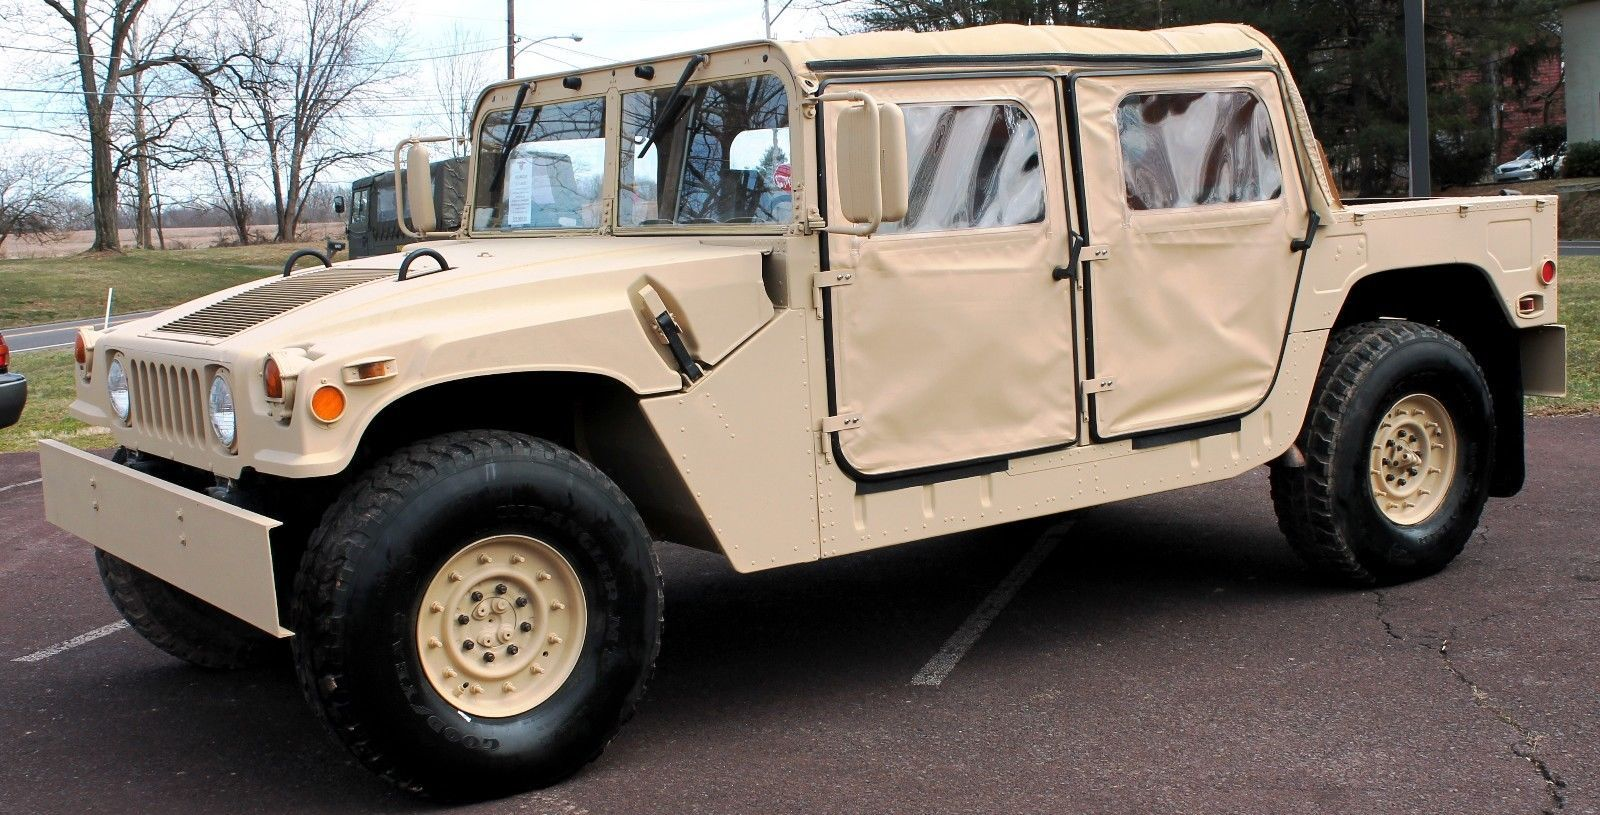 cool Great 1991 Hummer H1 M1 1991 HUMMER-HUMVEE H1 GENERAL MILITARY OPEN  RESTORED W/CLEAR PA. REG. 2017 2018